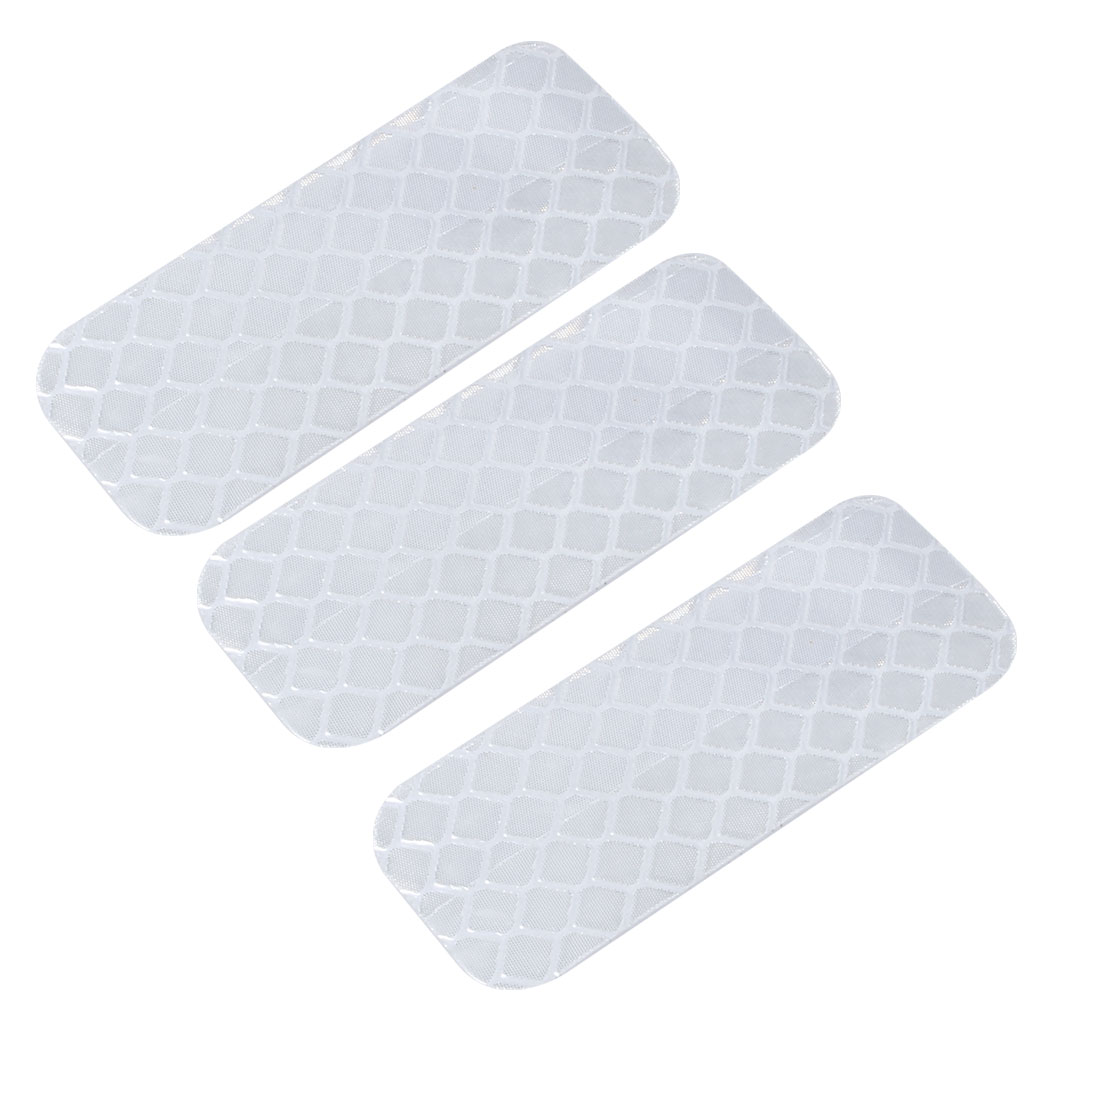 3pcs Honeycomb Reflective Warning Tape Film Sticker White 20mm Width 50mm Length